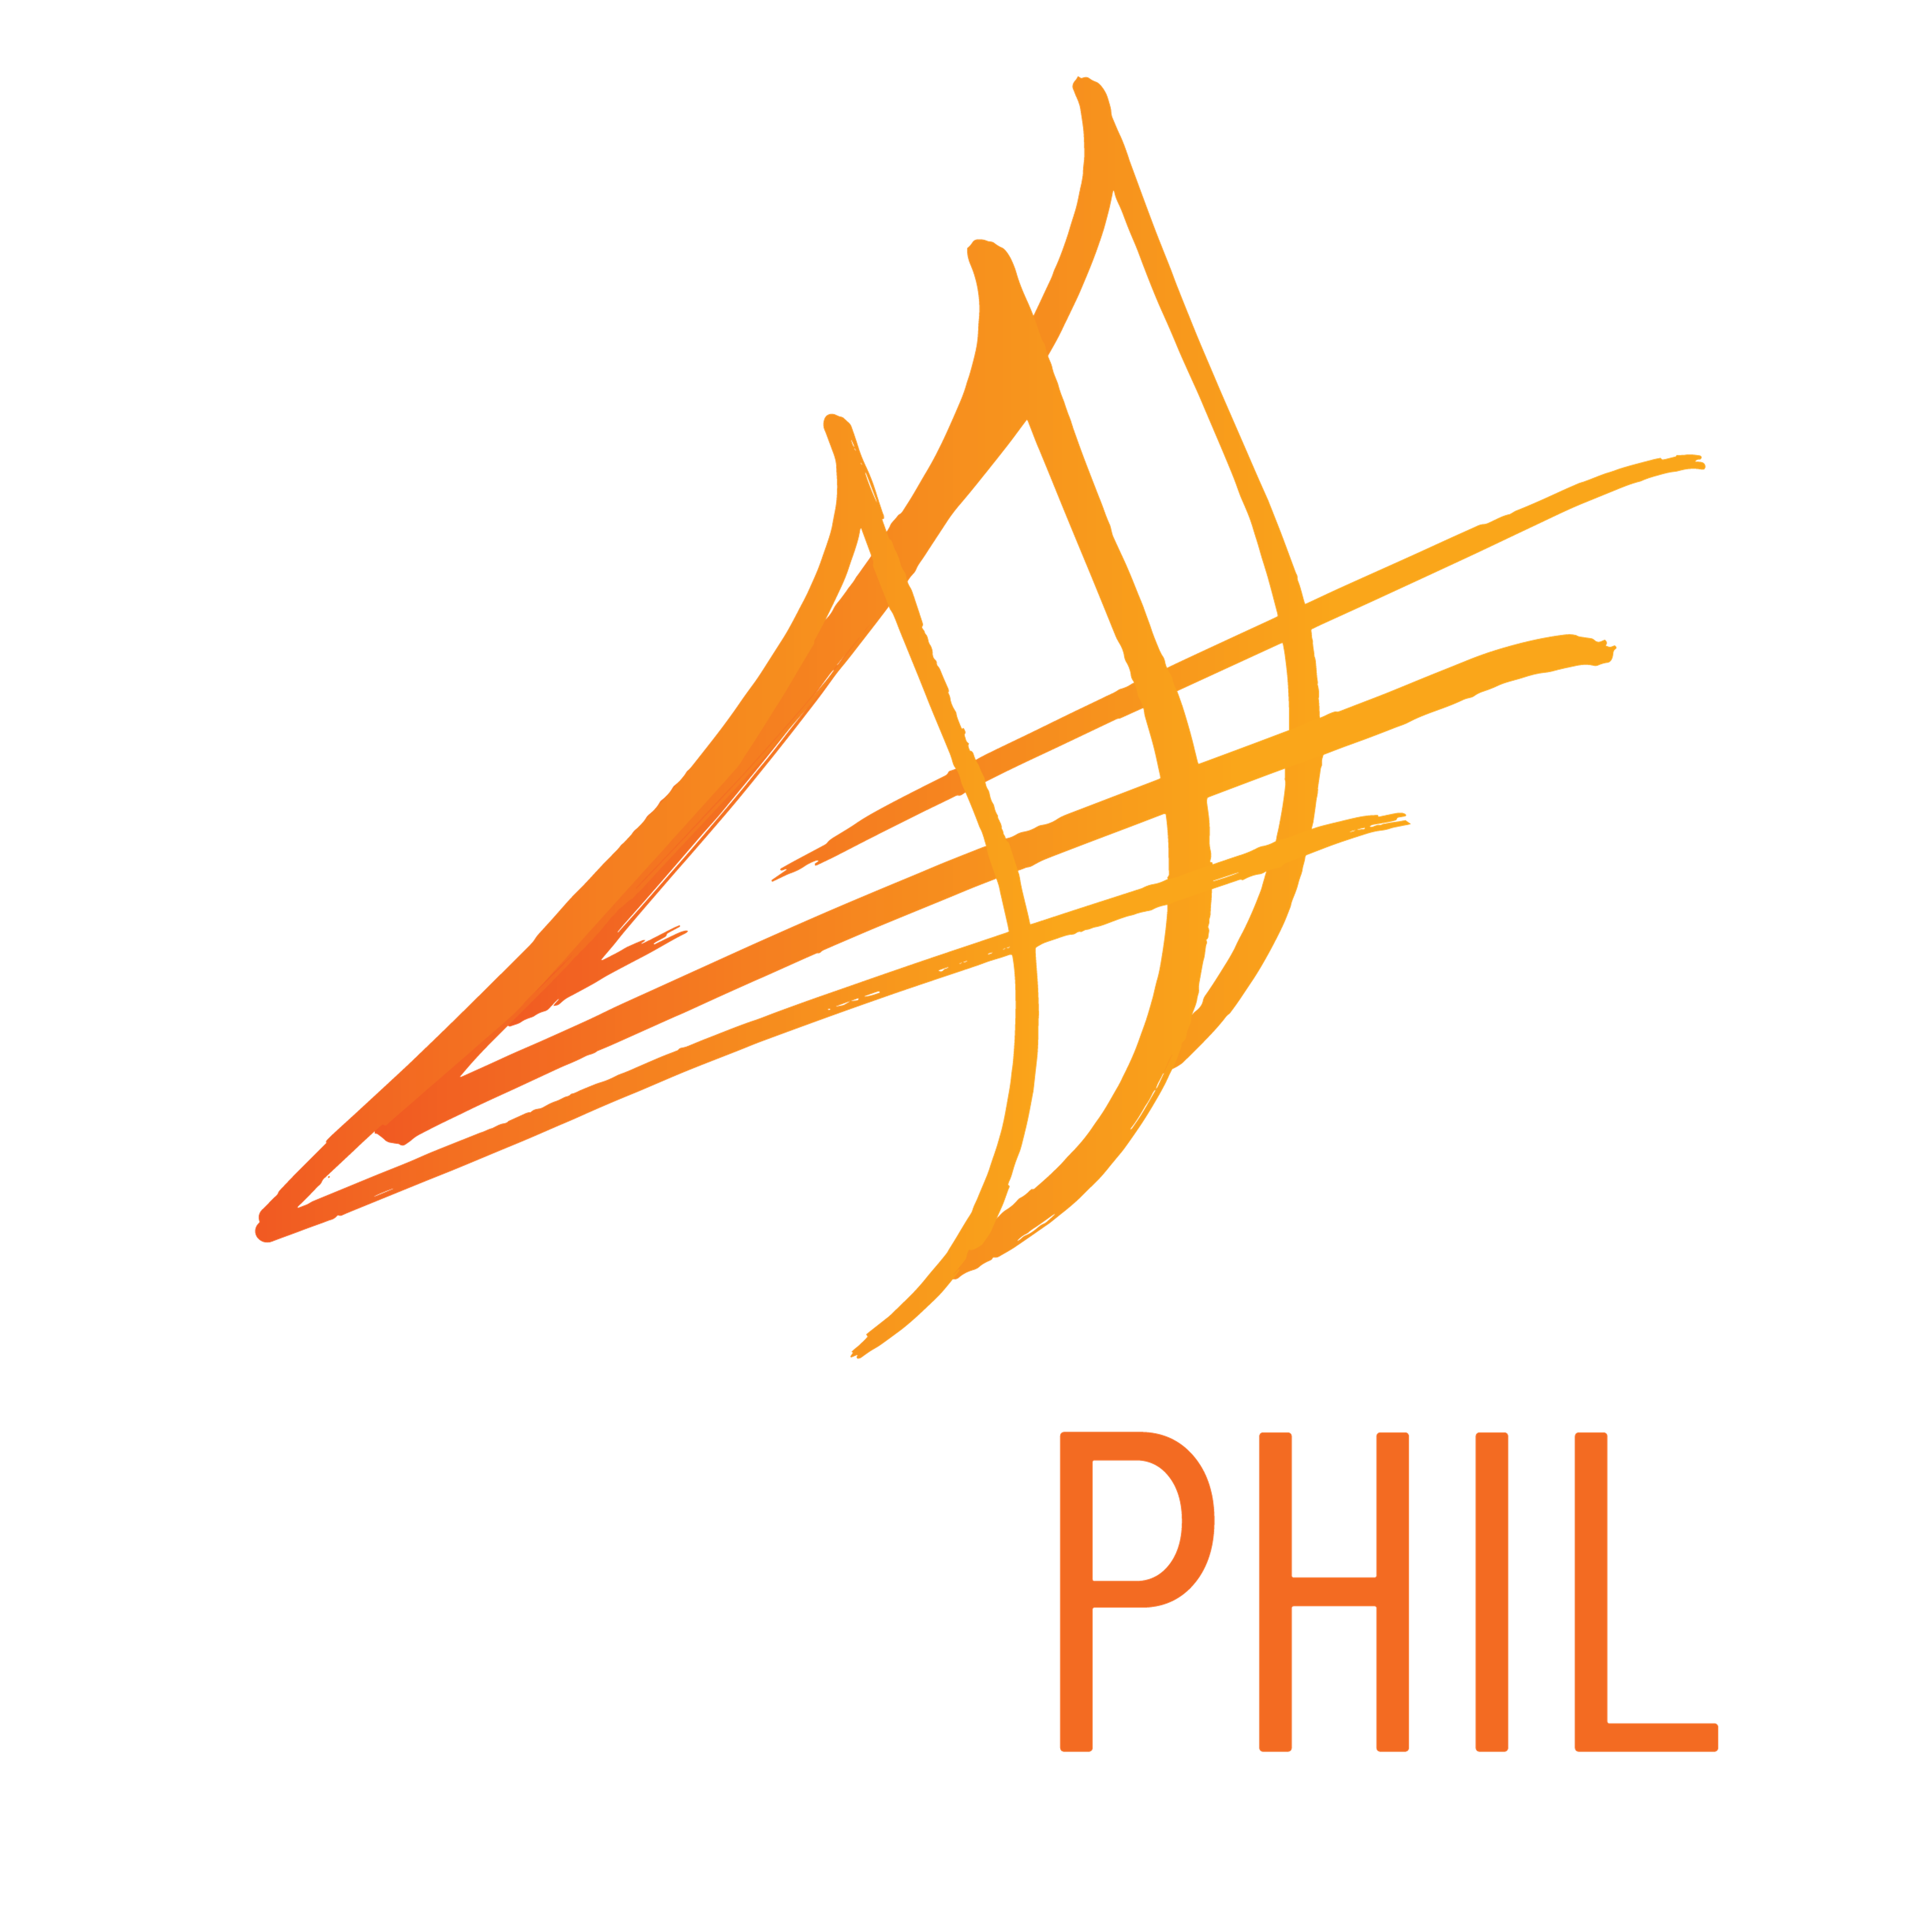 This is the Boulder Philharmonic logo